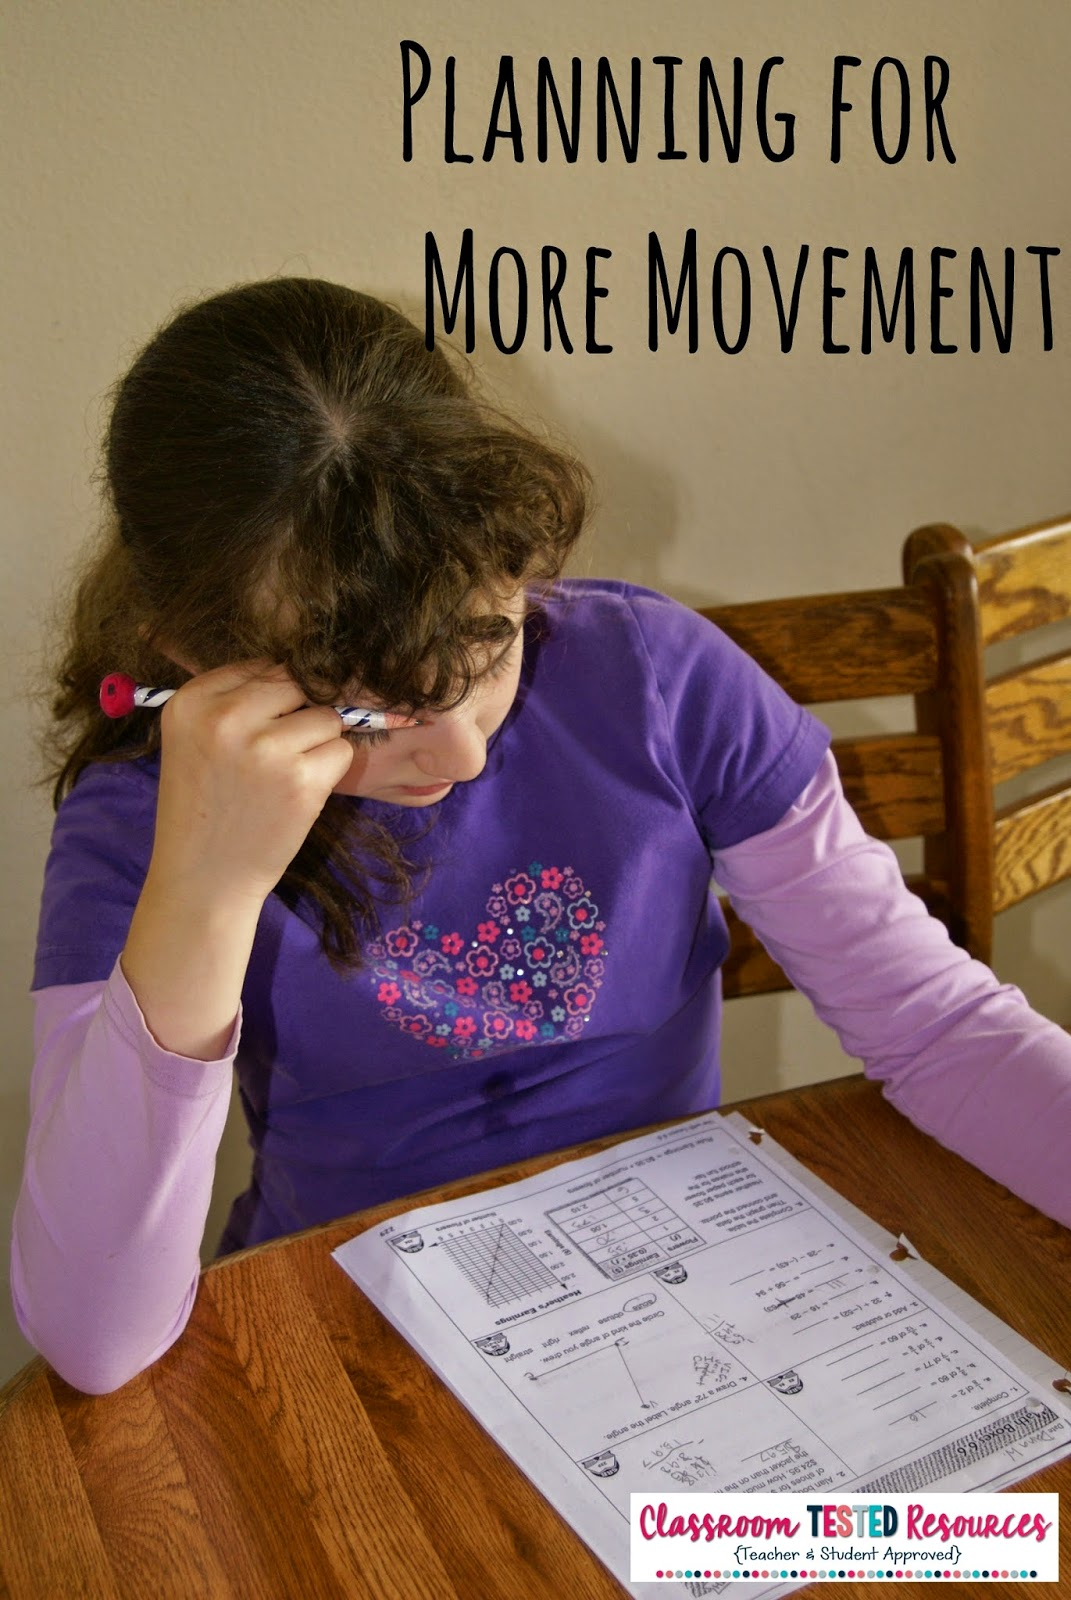 http://www.classroomtestedresources.com/2015/04/planning-for-more-movement.html